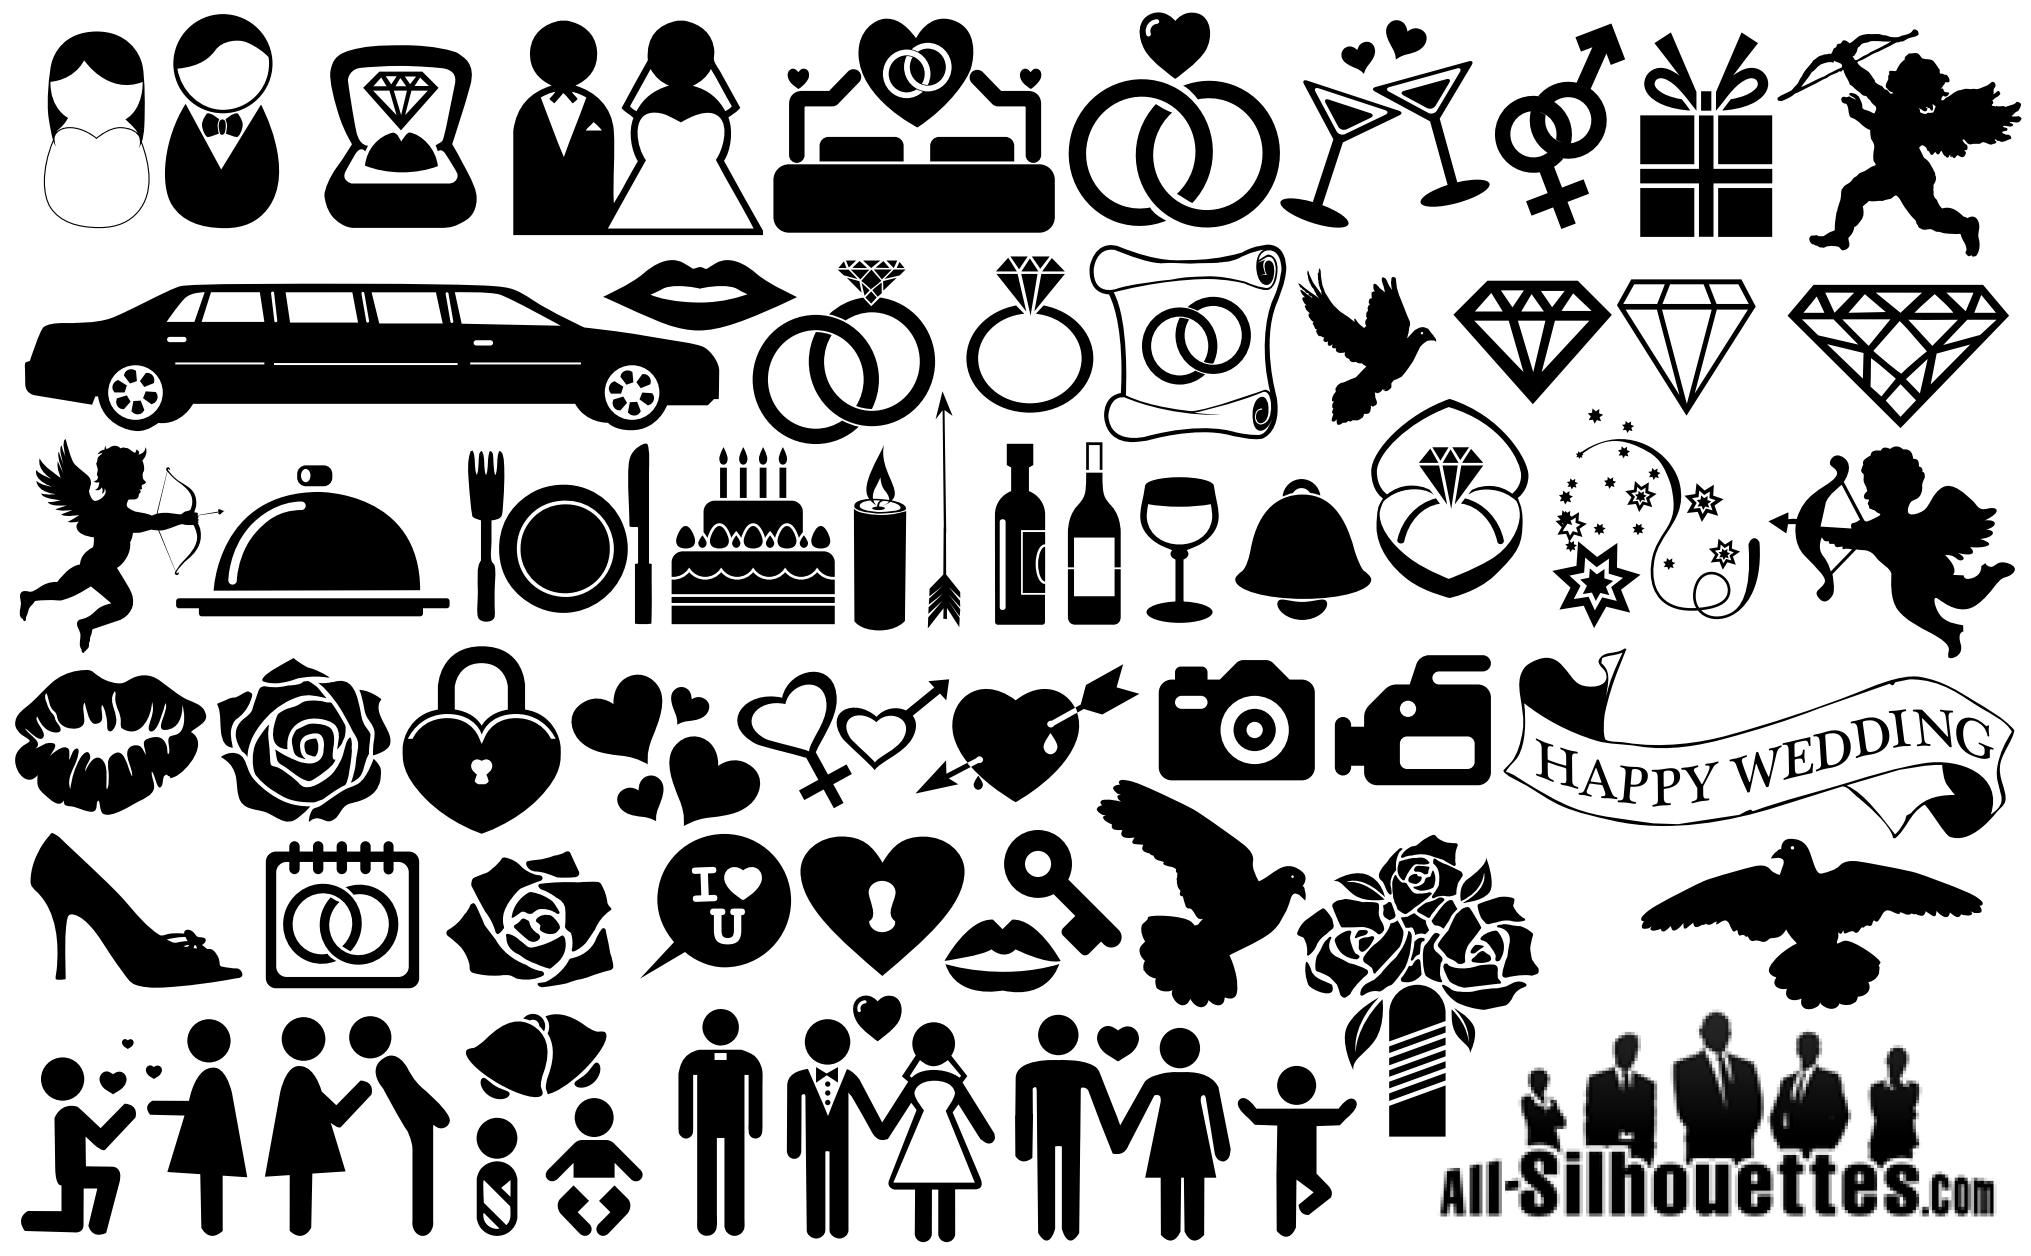 Wedding Icons Symbols Silhouette Silhouettes Vector